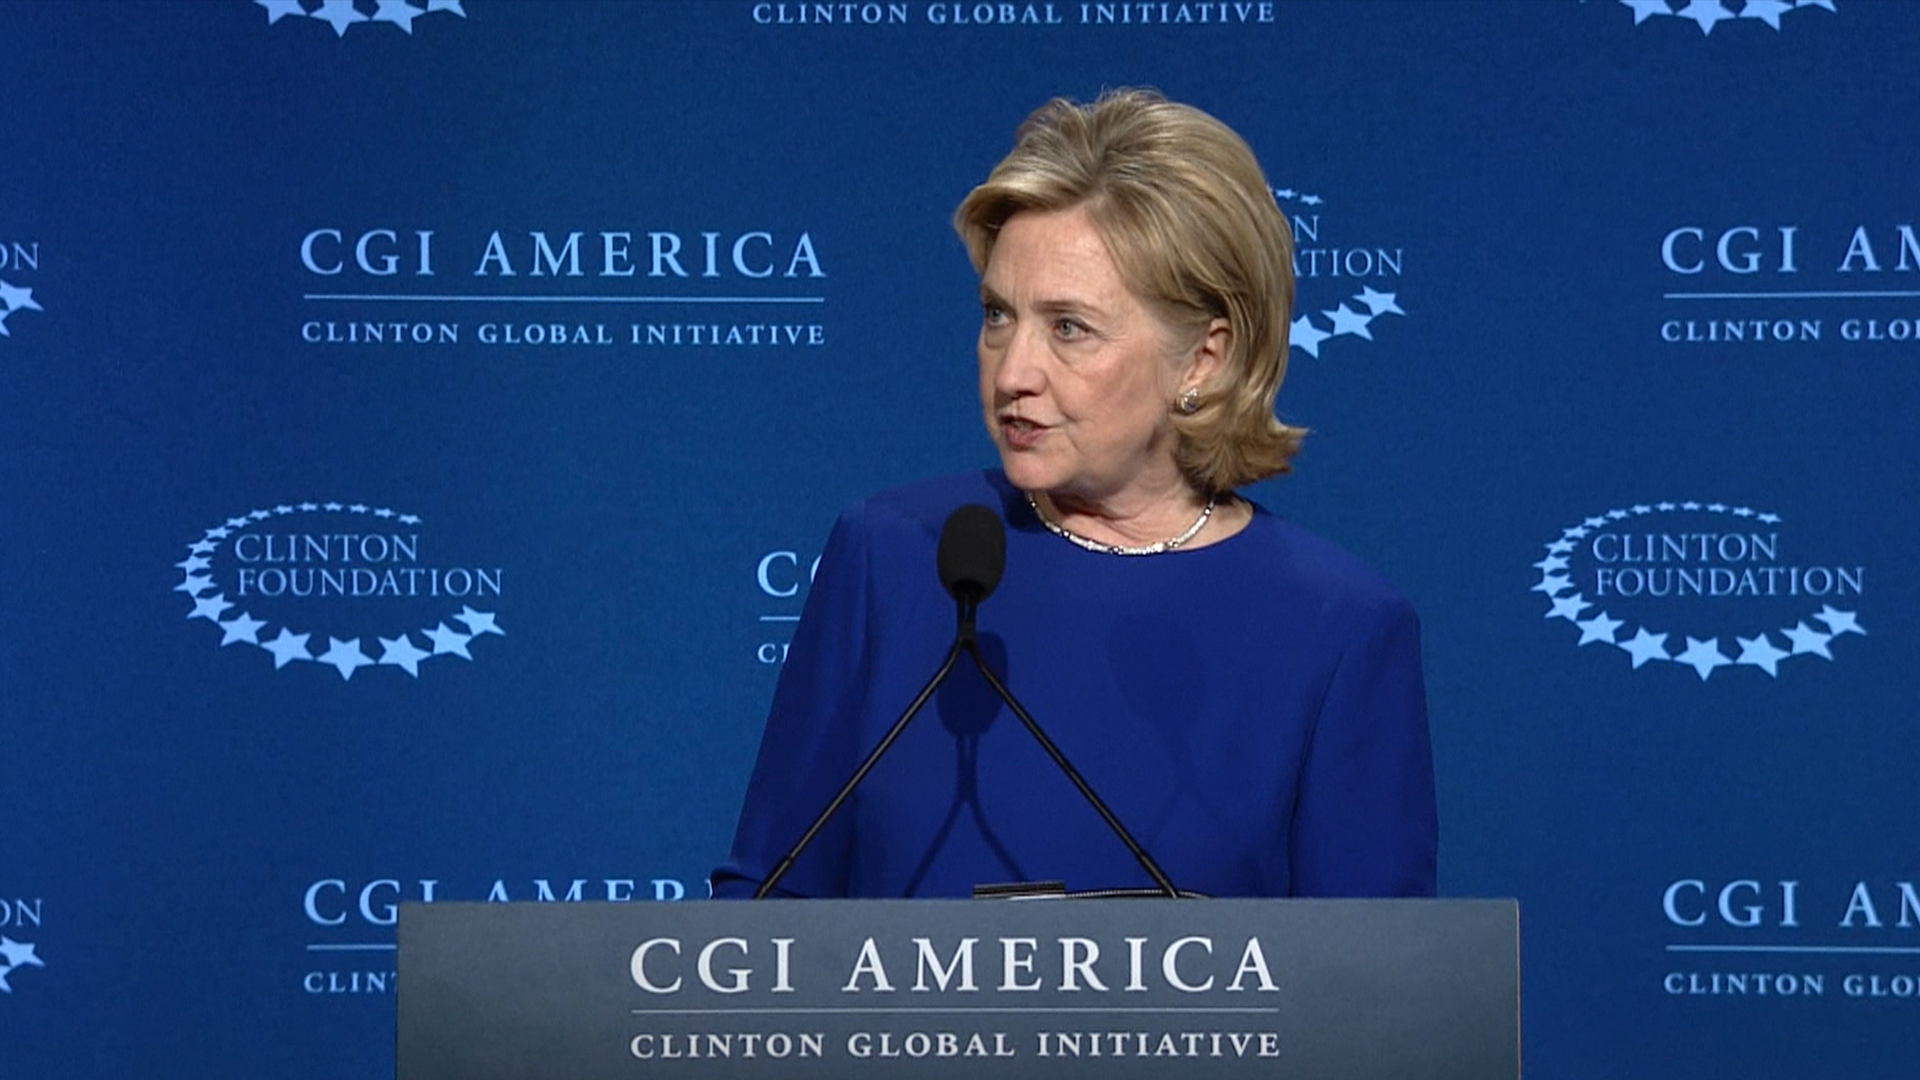 Timing 'could not be better' for Clinton